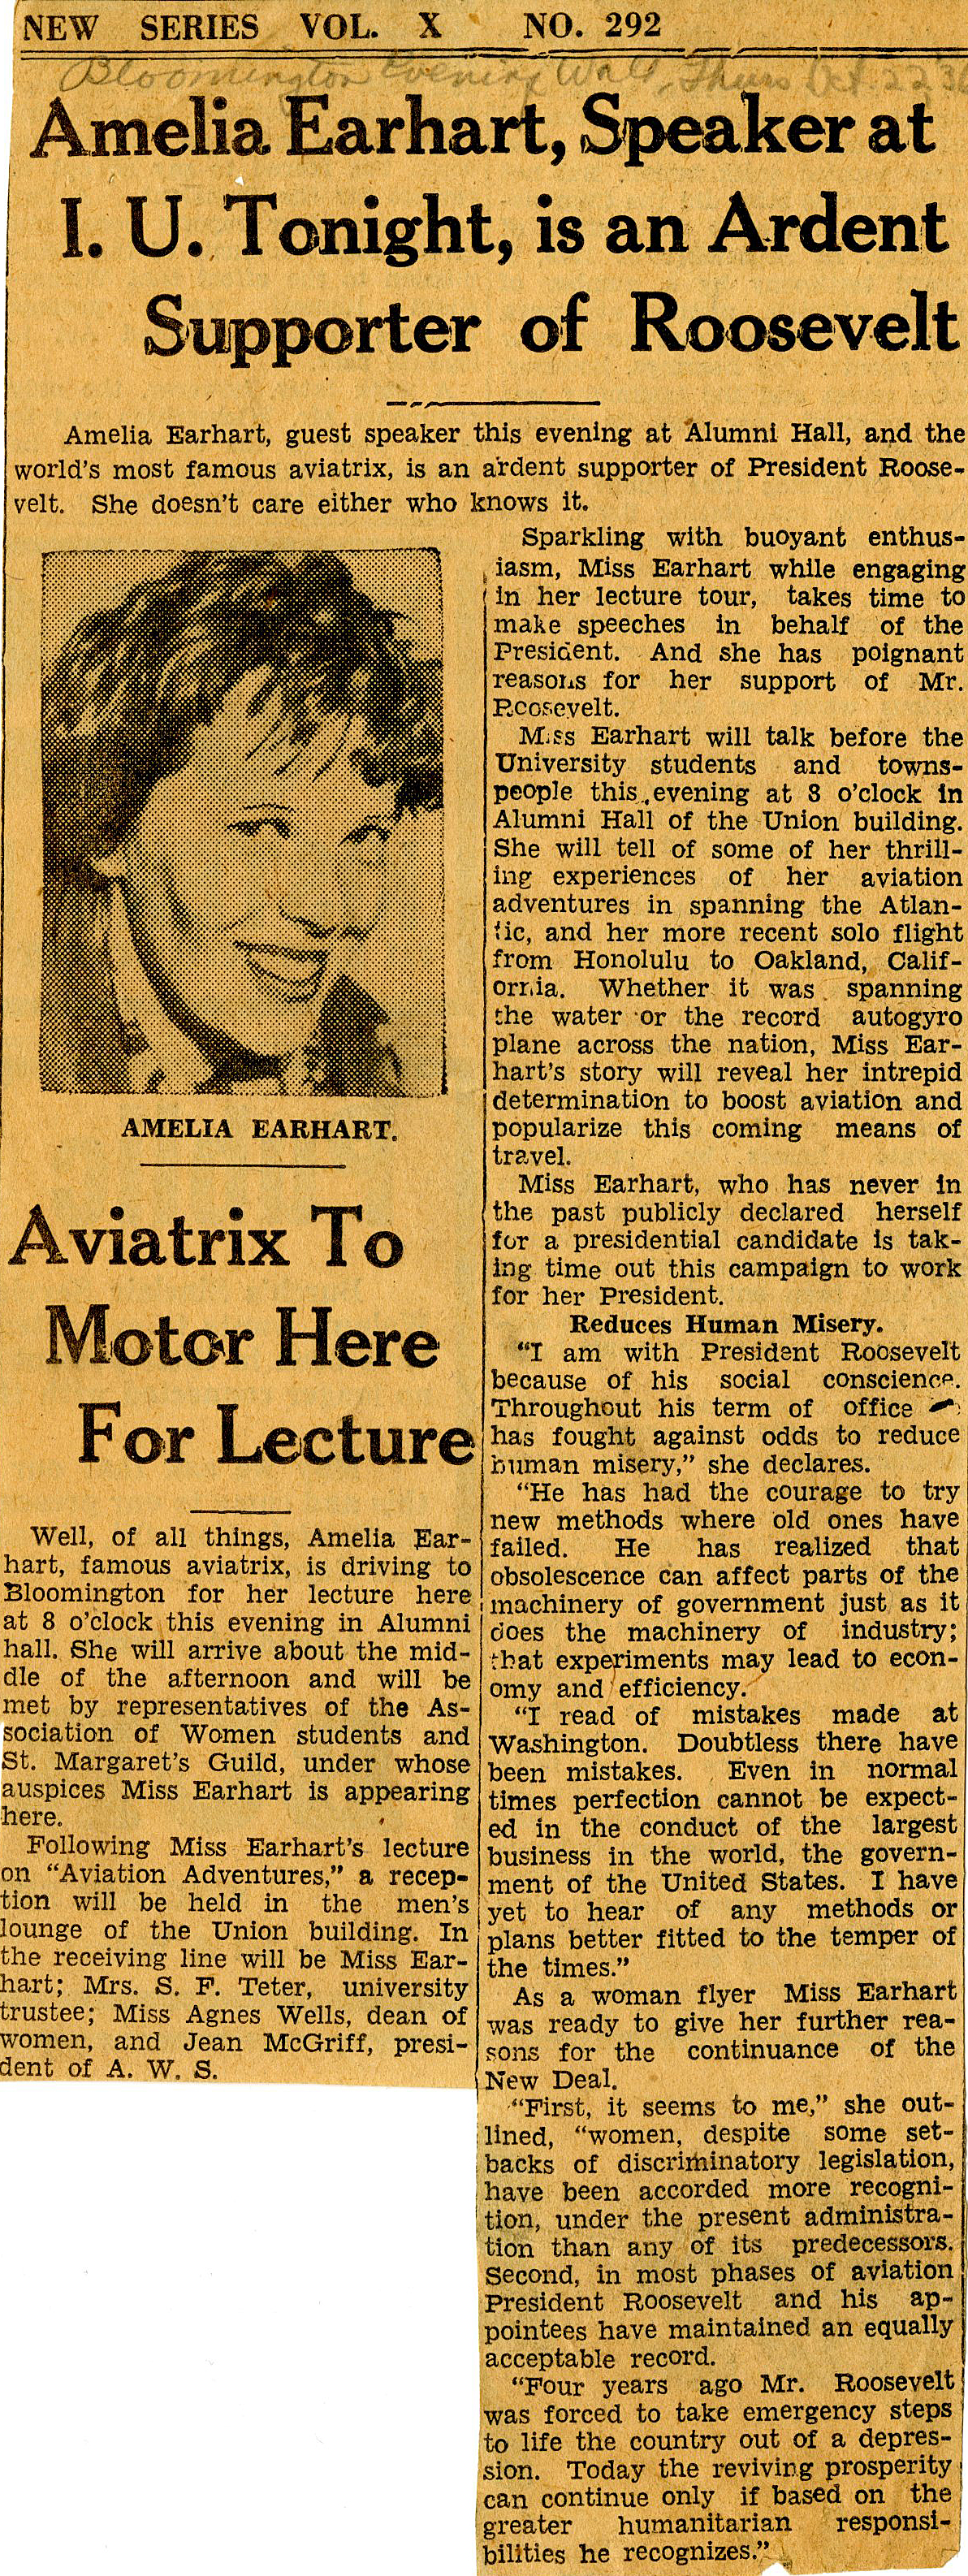 Amelia Earhart Research Paper  Original Content How Do I Write A Research Paper Proposal